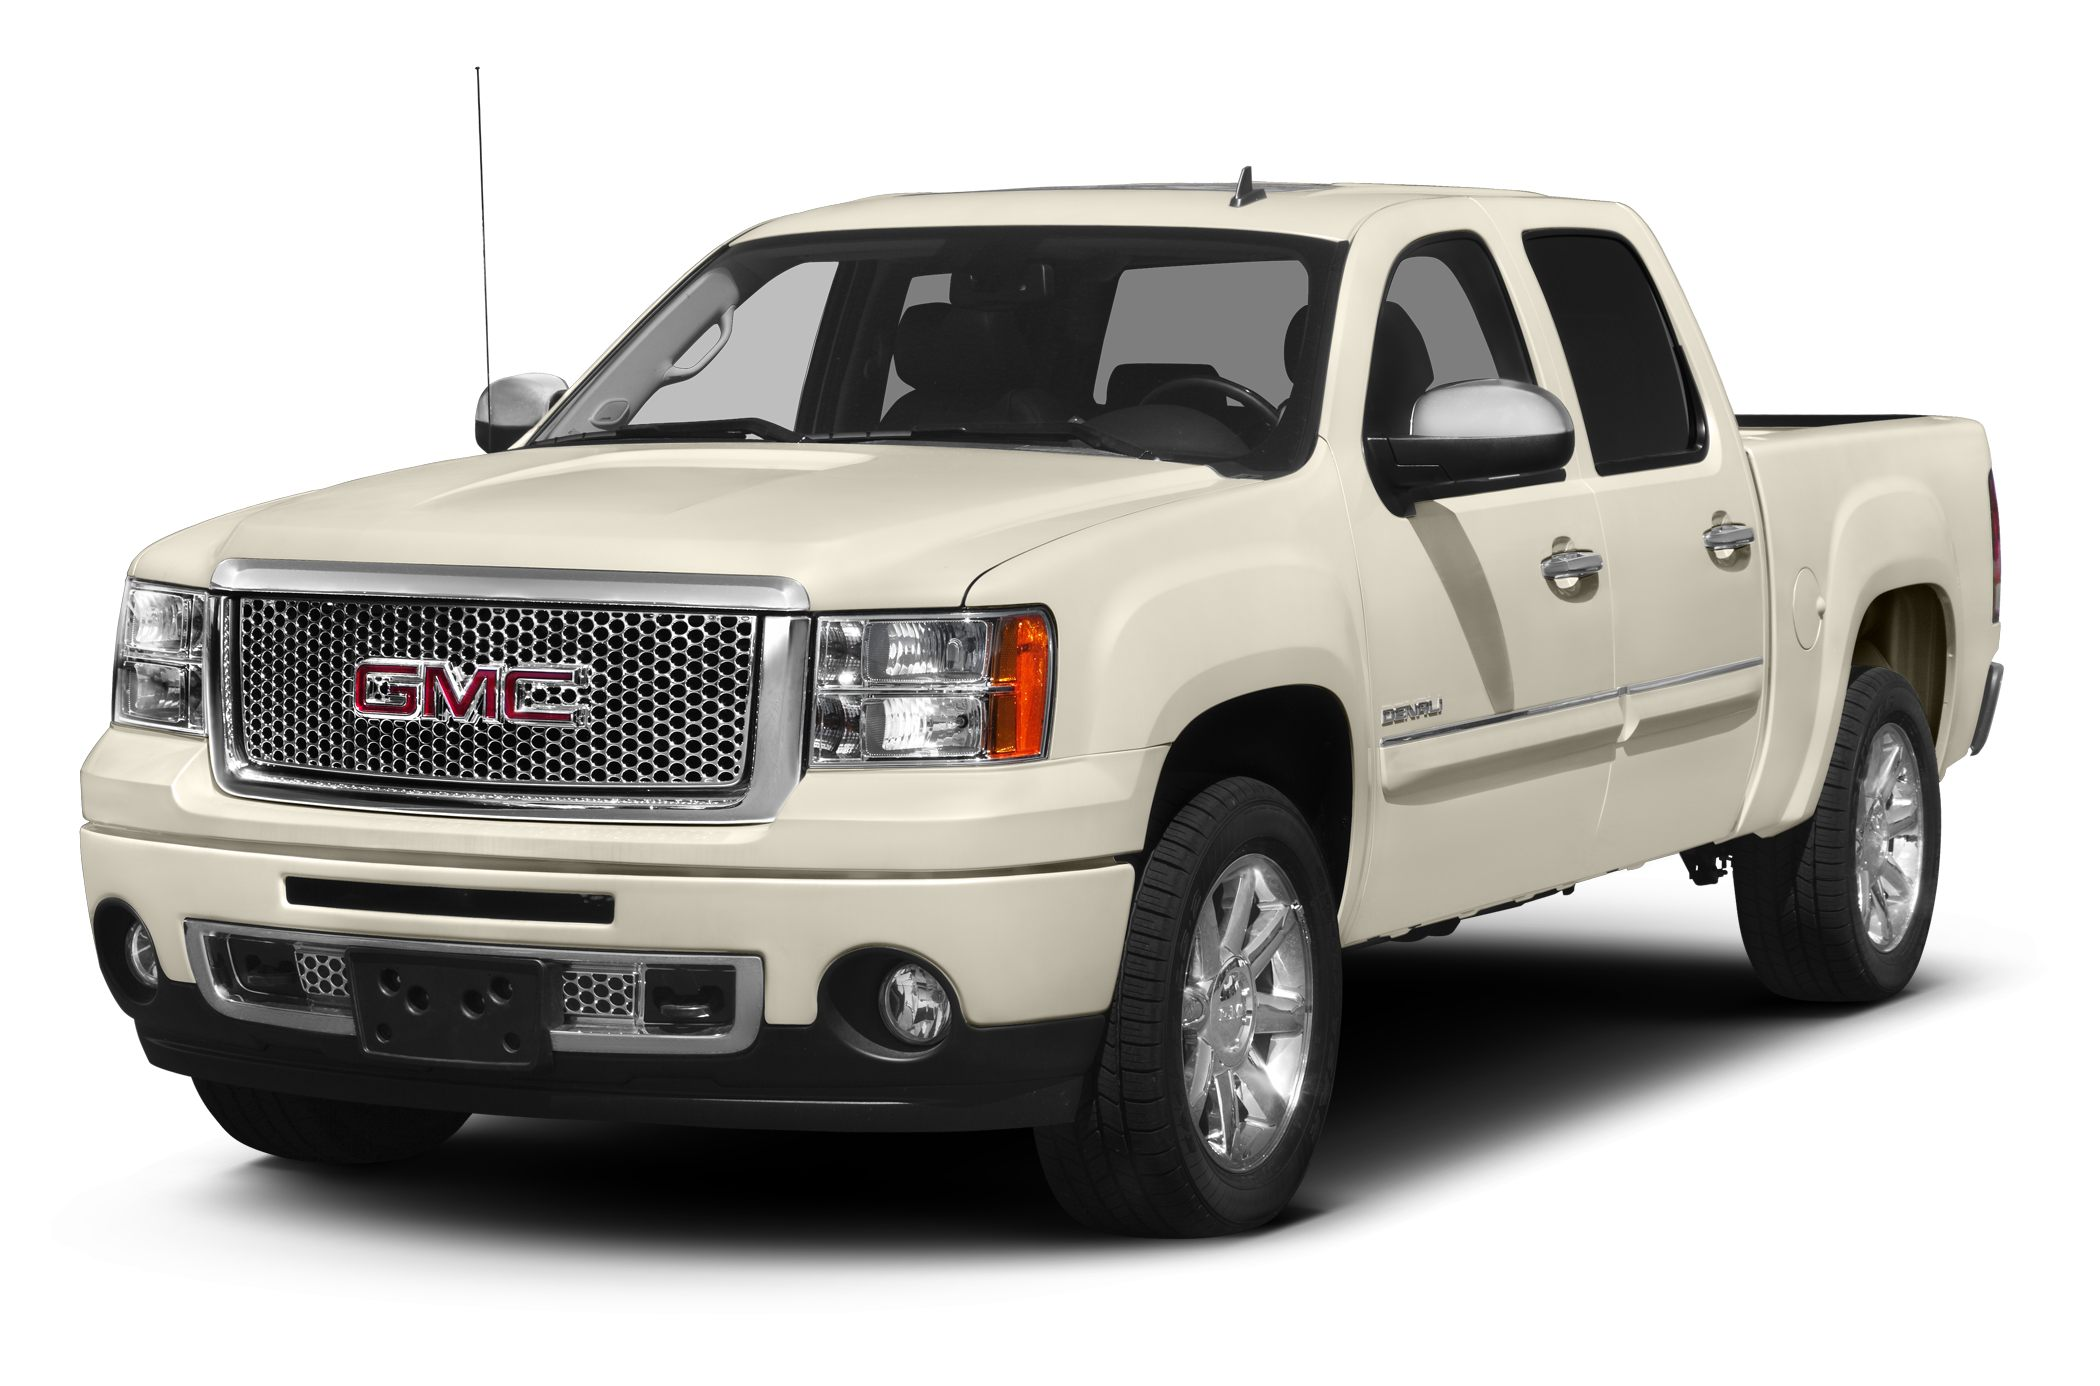 2012 GMC Sierra 1500 Denali Crew Cab Pickup for sale in Winston Salem for $35,590 with 47,737 miles.